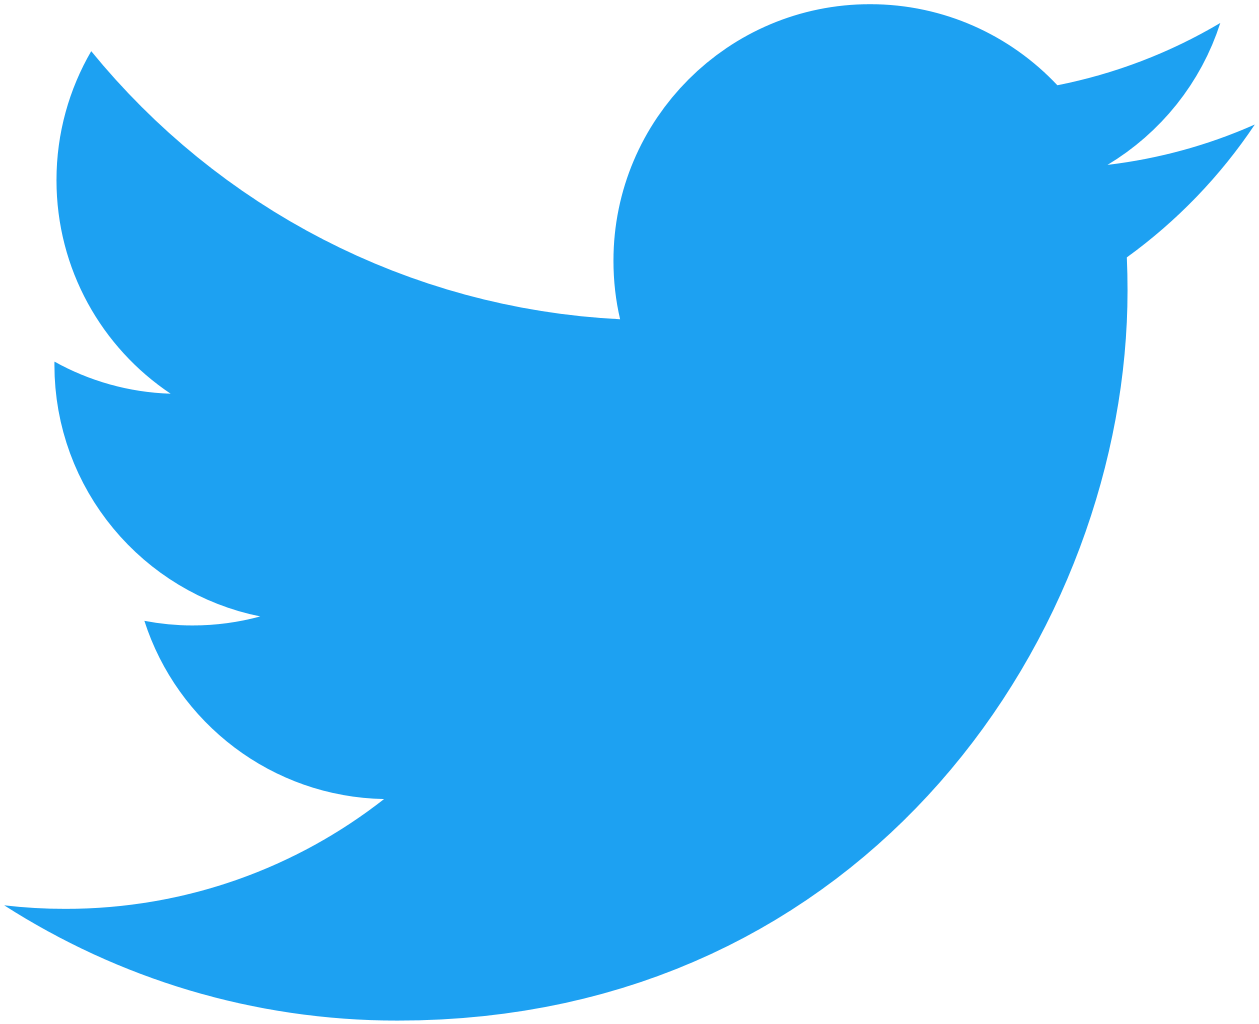 A bright blue illustration of a bird, the Twitter logo